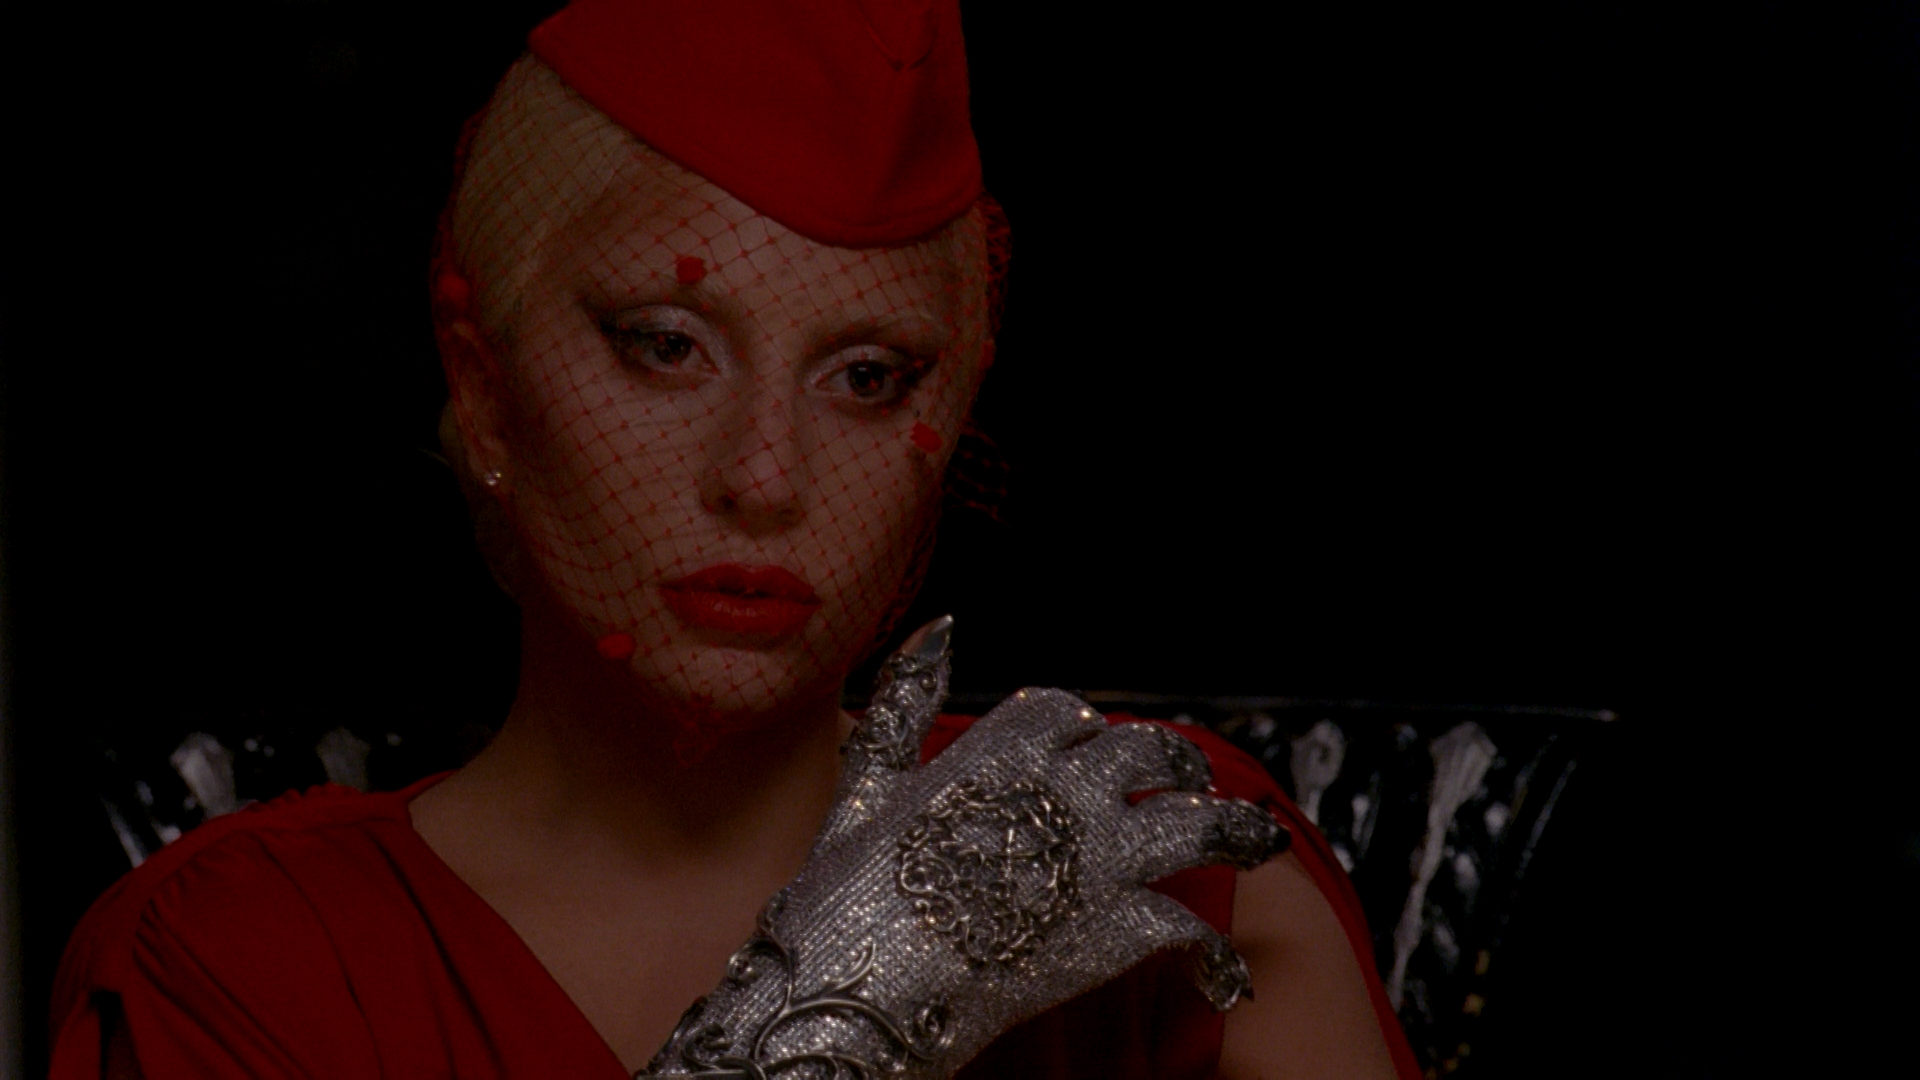 AHS Hotel:Lady Gaga getting ready